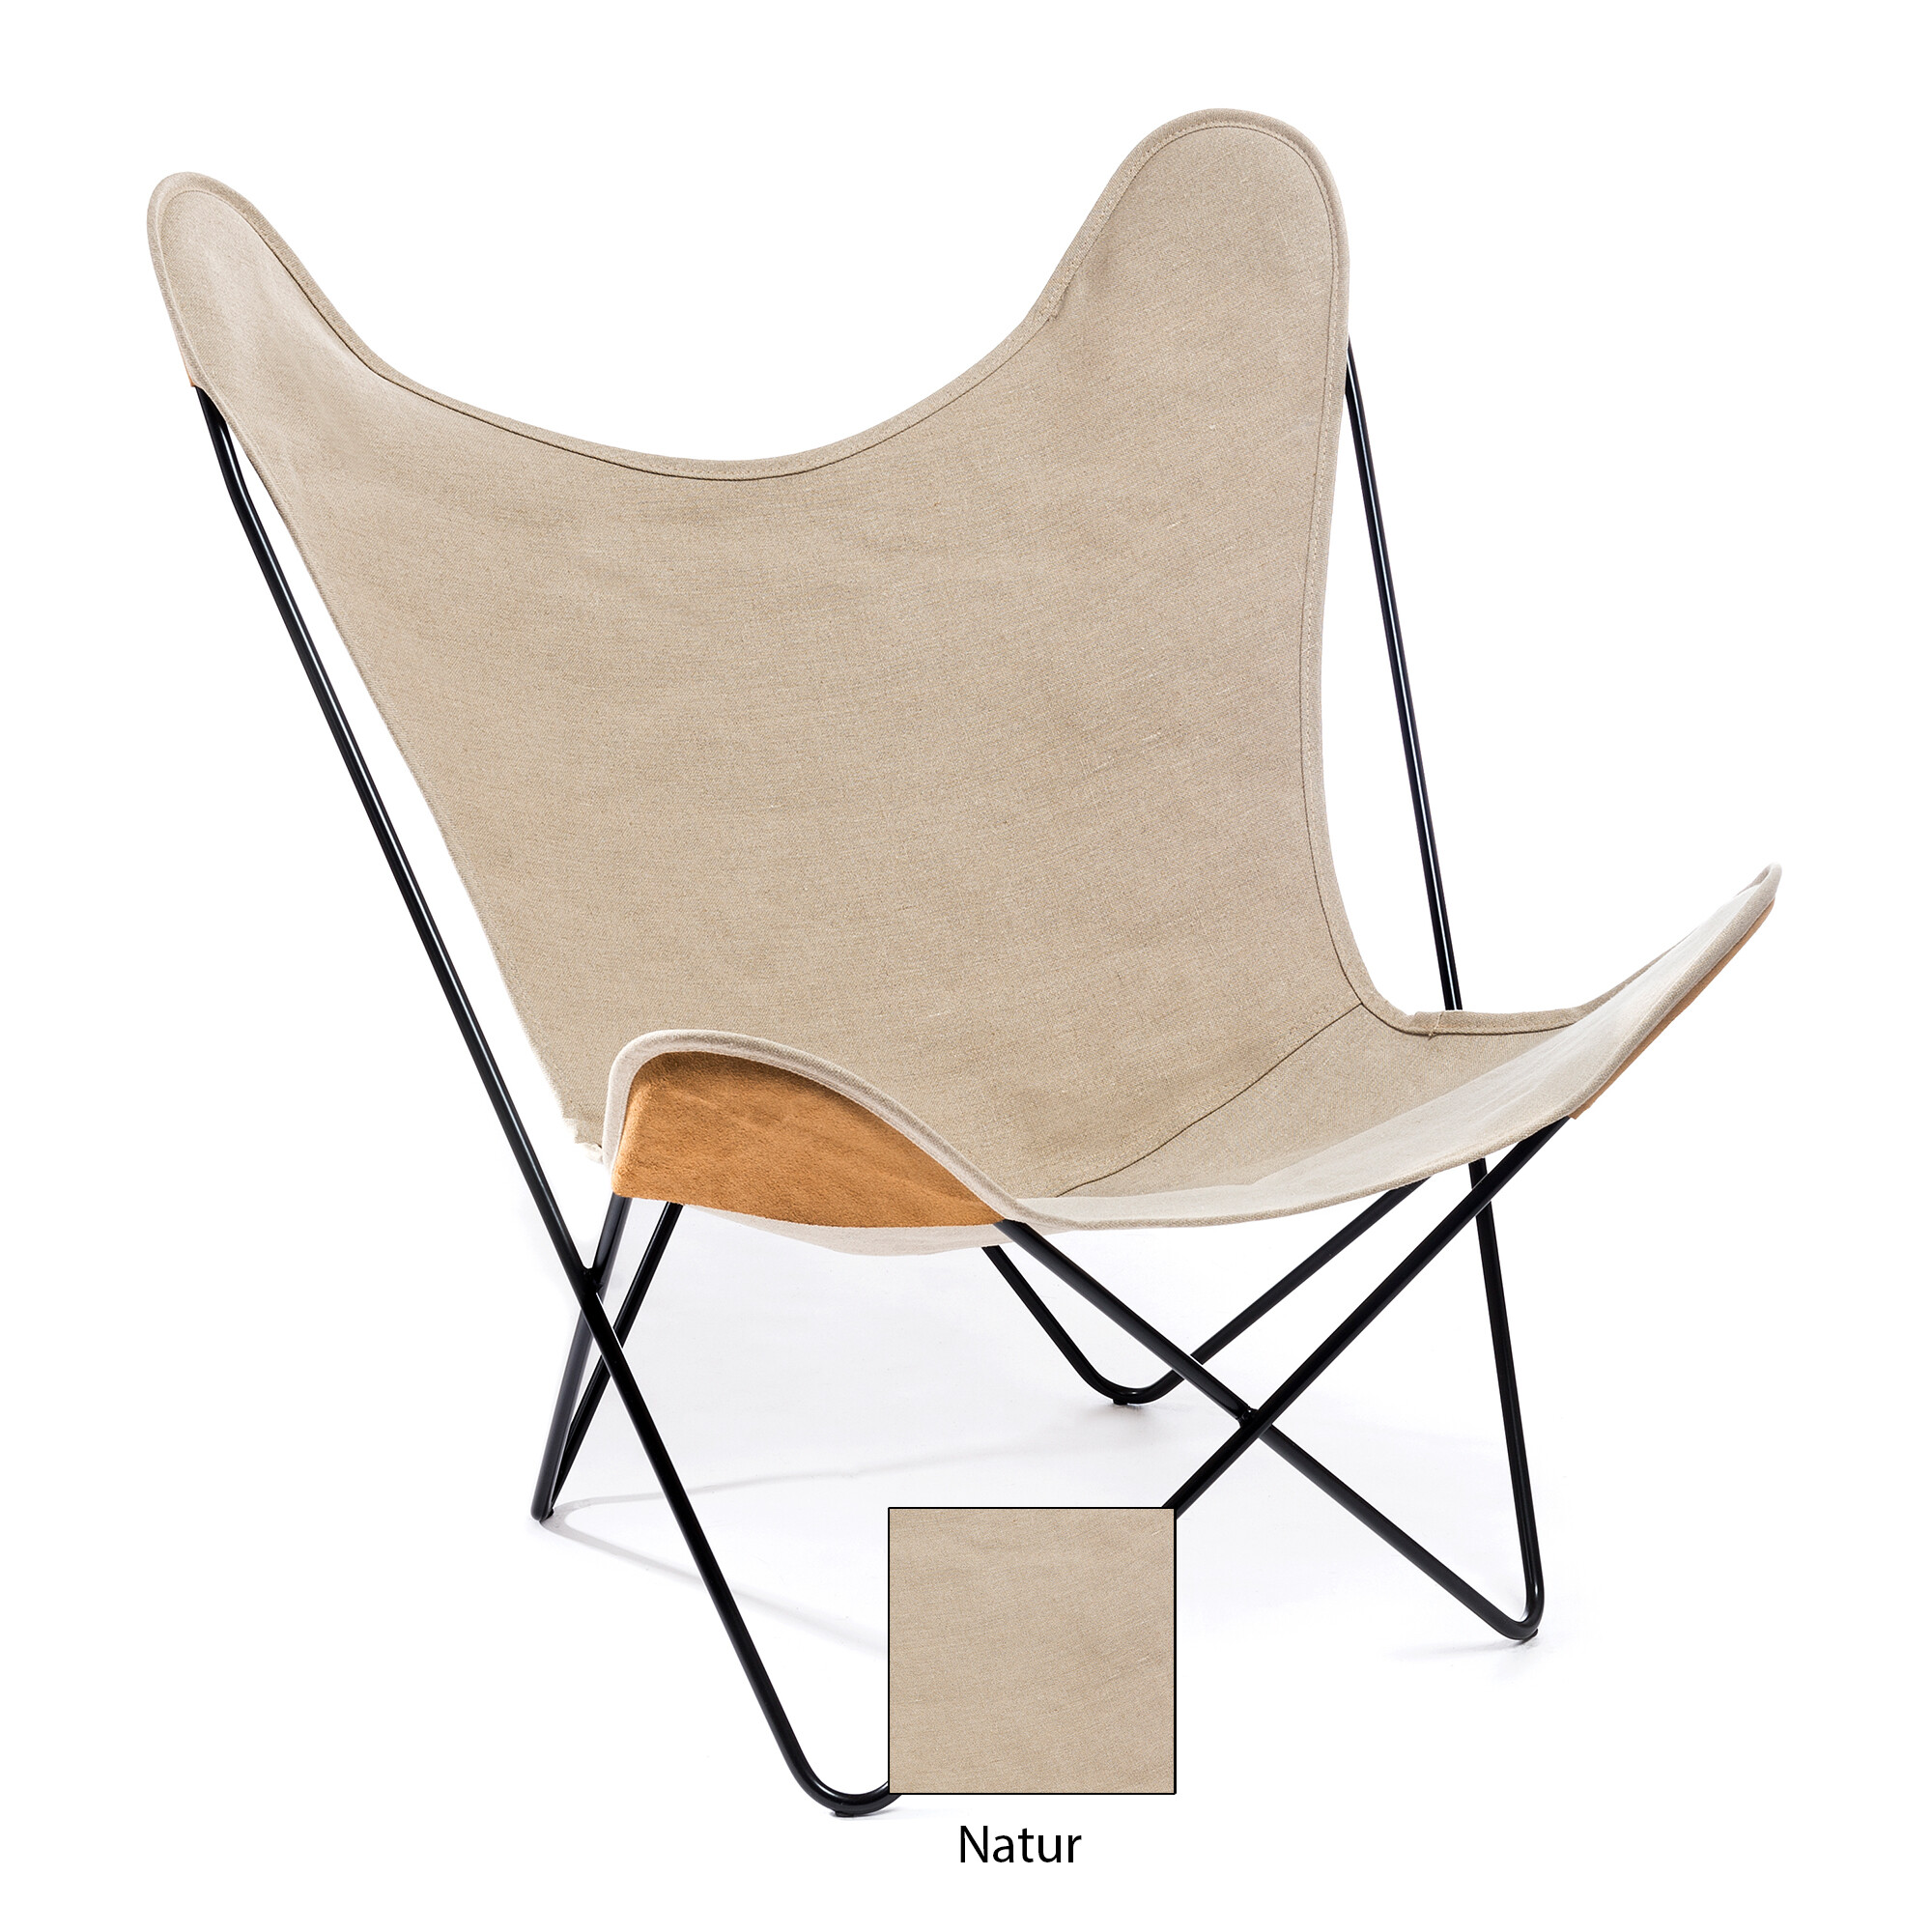 Hardoy Butterfly Chair Leinen By Manufakturplus Media Photos And Videos 5 Archello